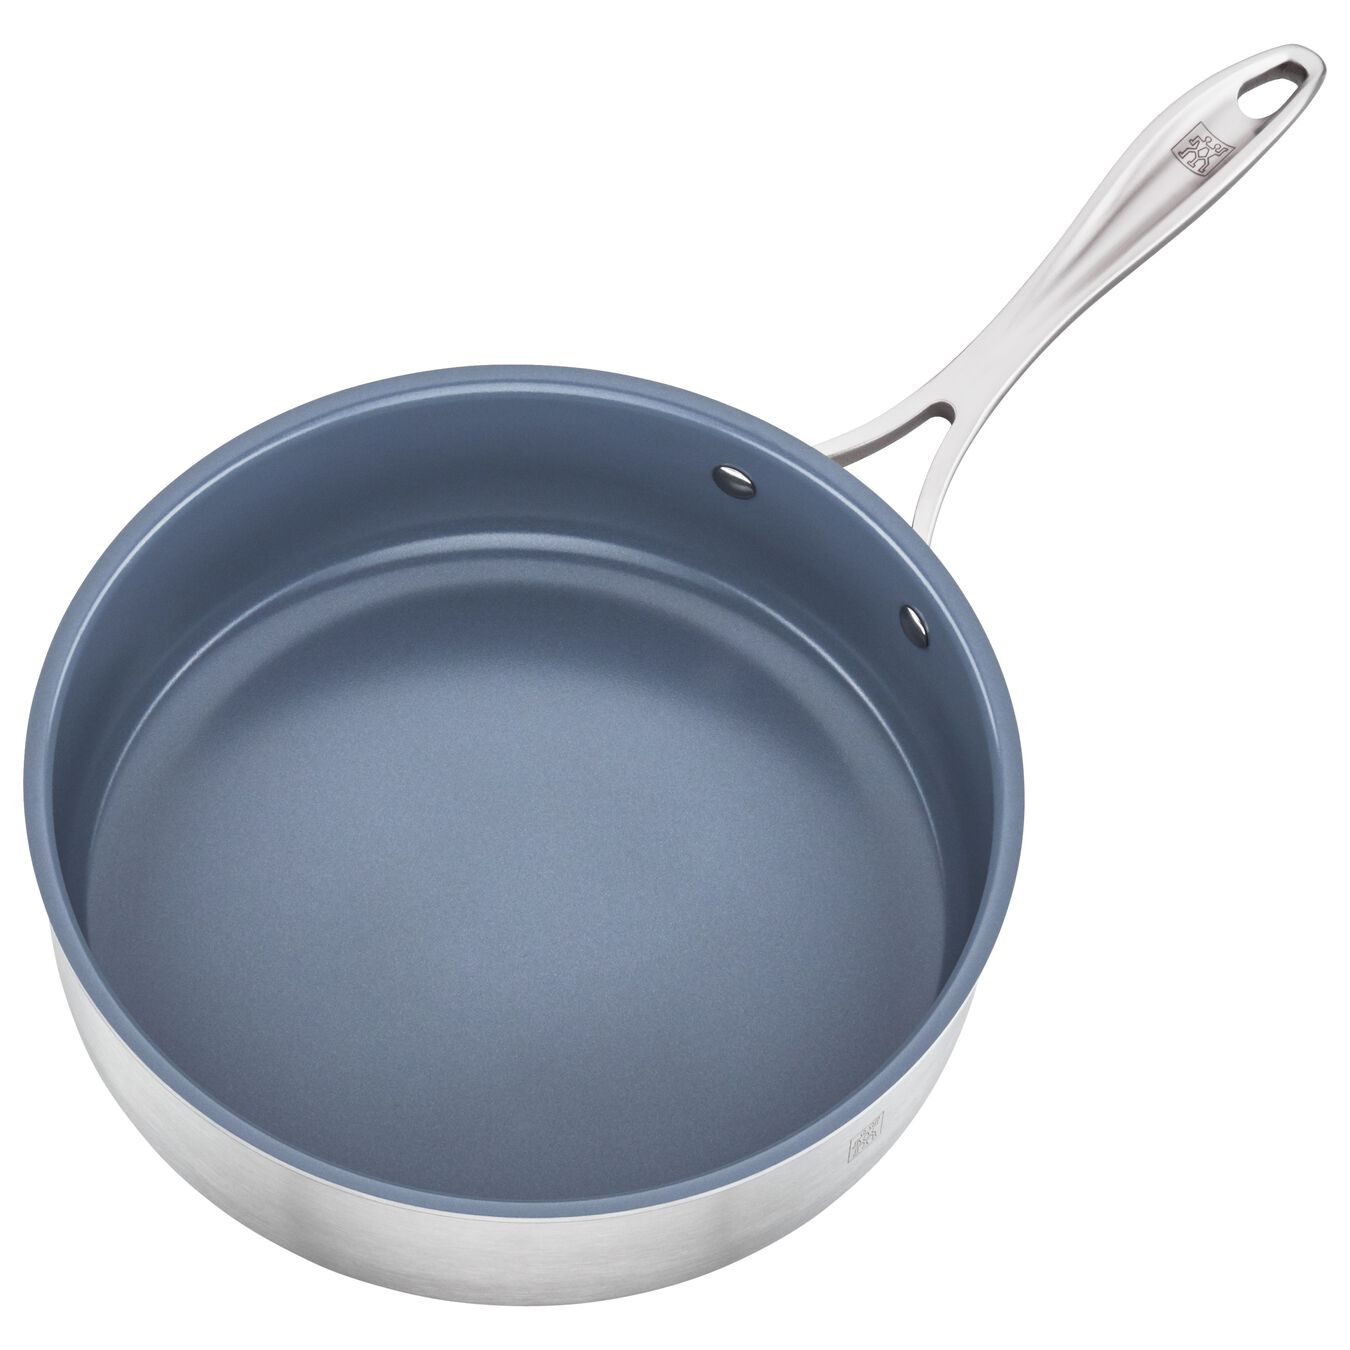 3-ply 3-qt Stainless Steel Ceramic Nonstick Saute Pan,,large 2